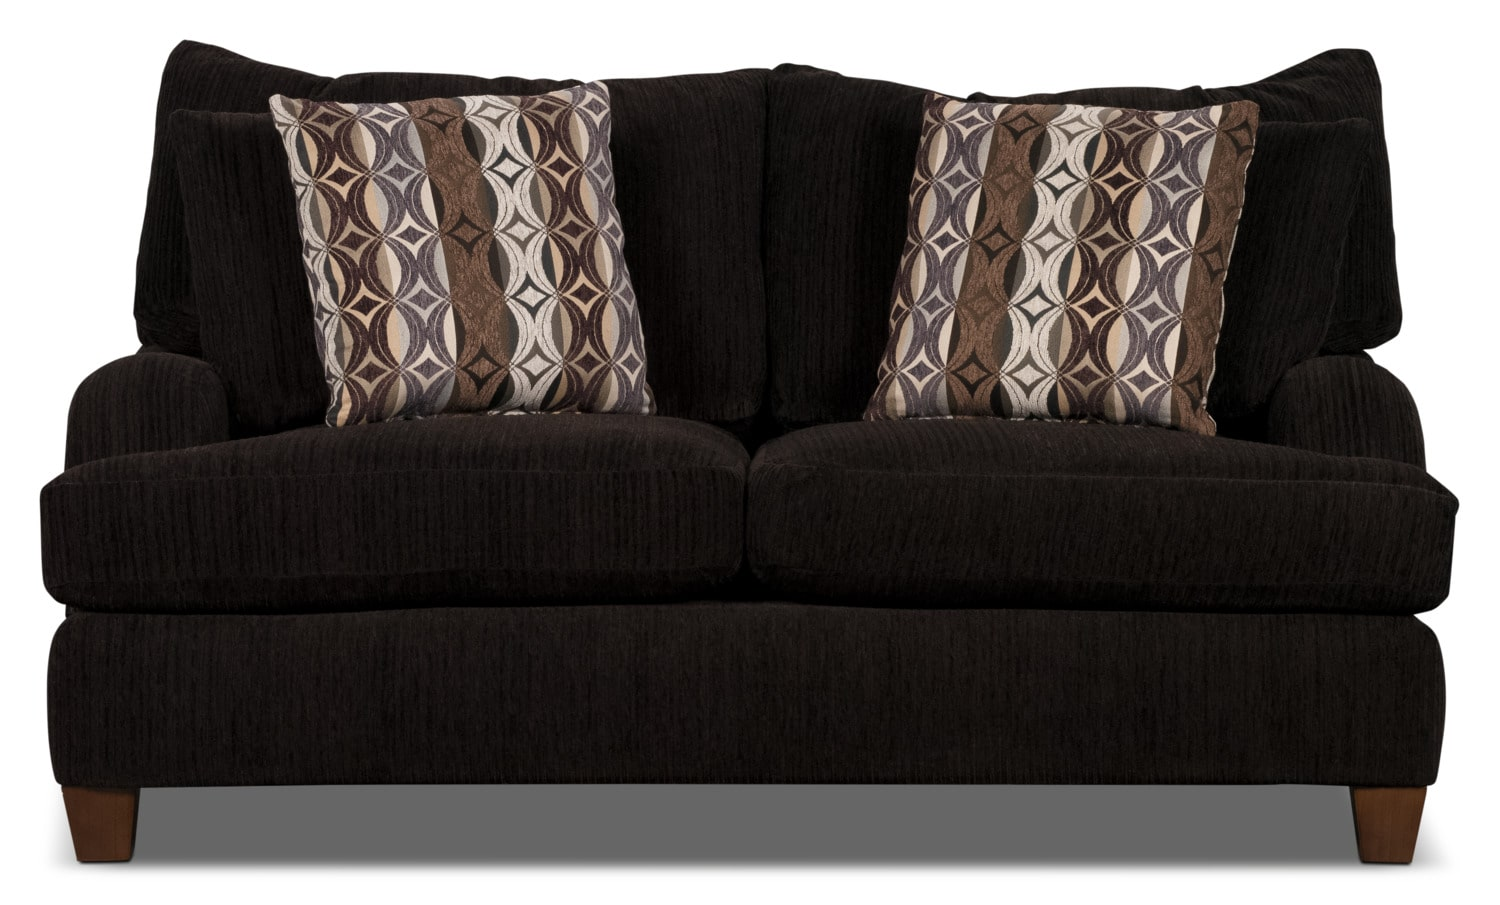 Putty Chenille Loveseat - Chocolate